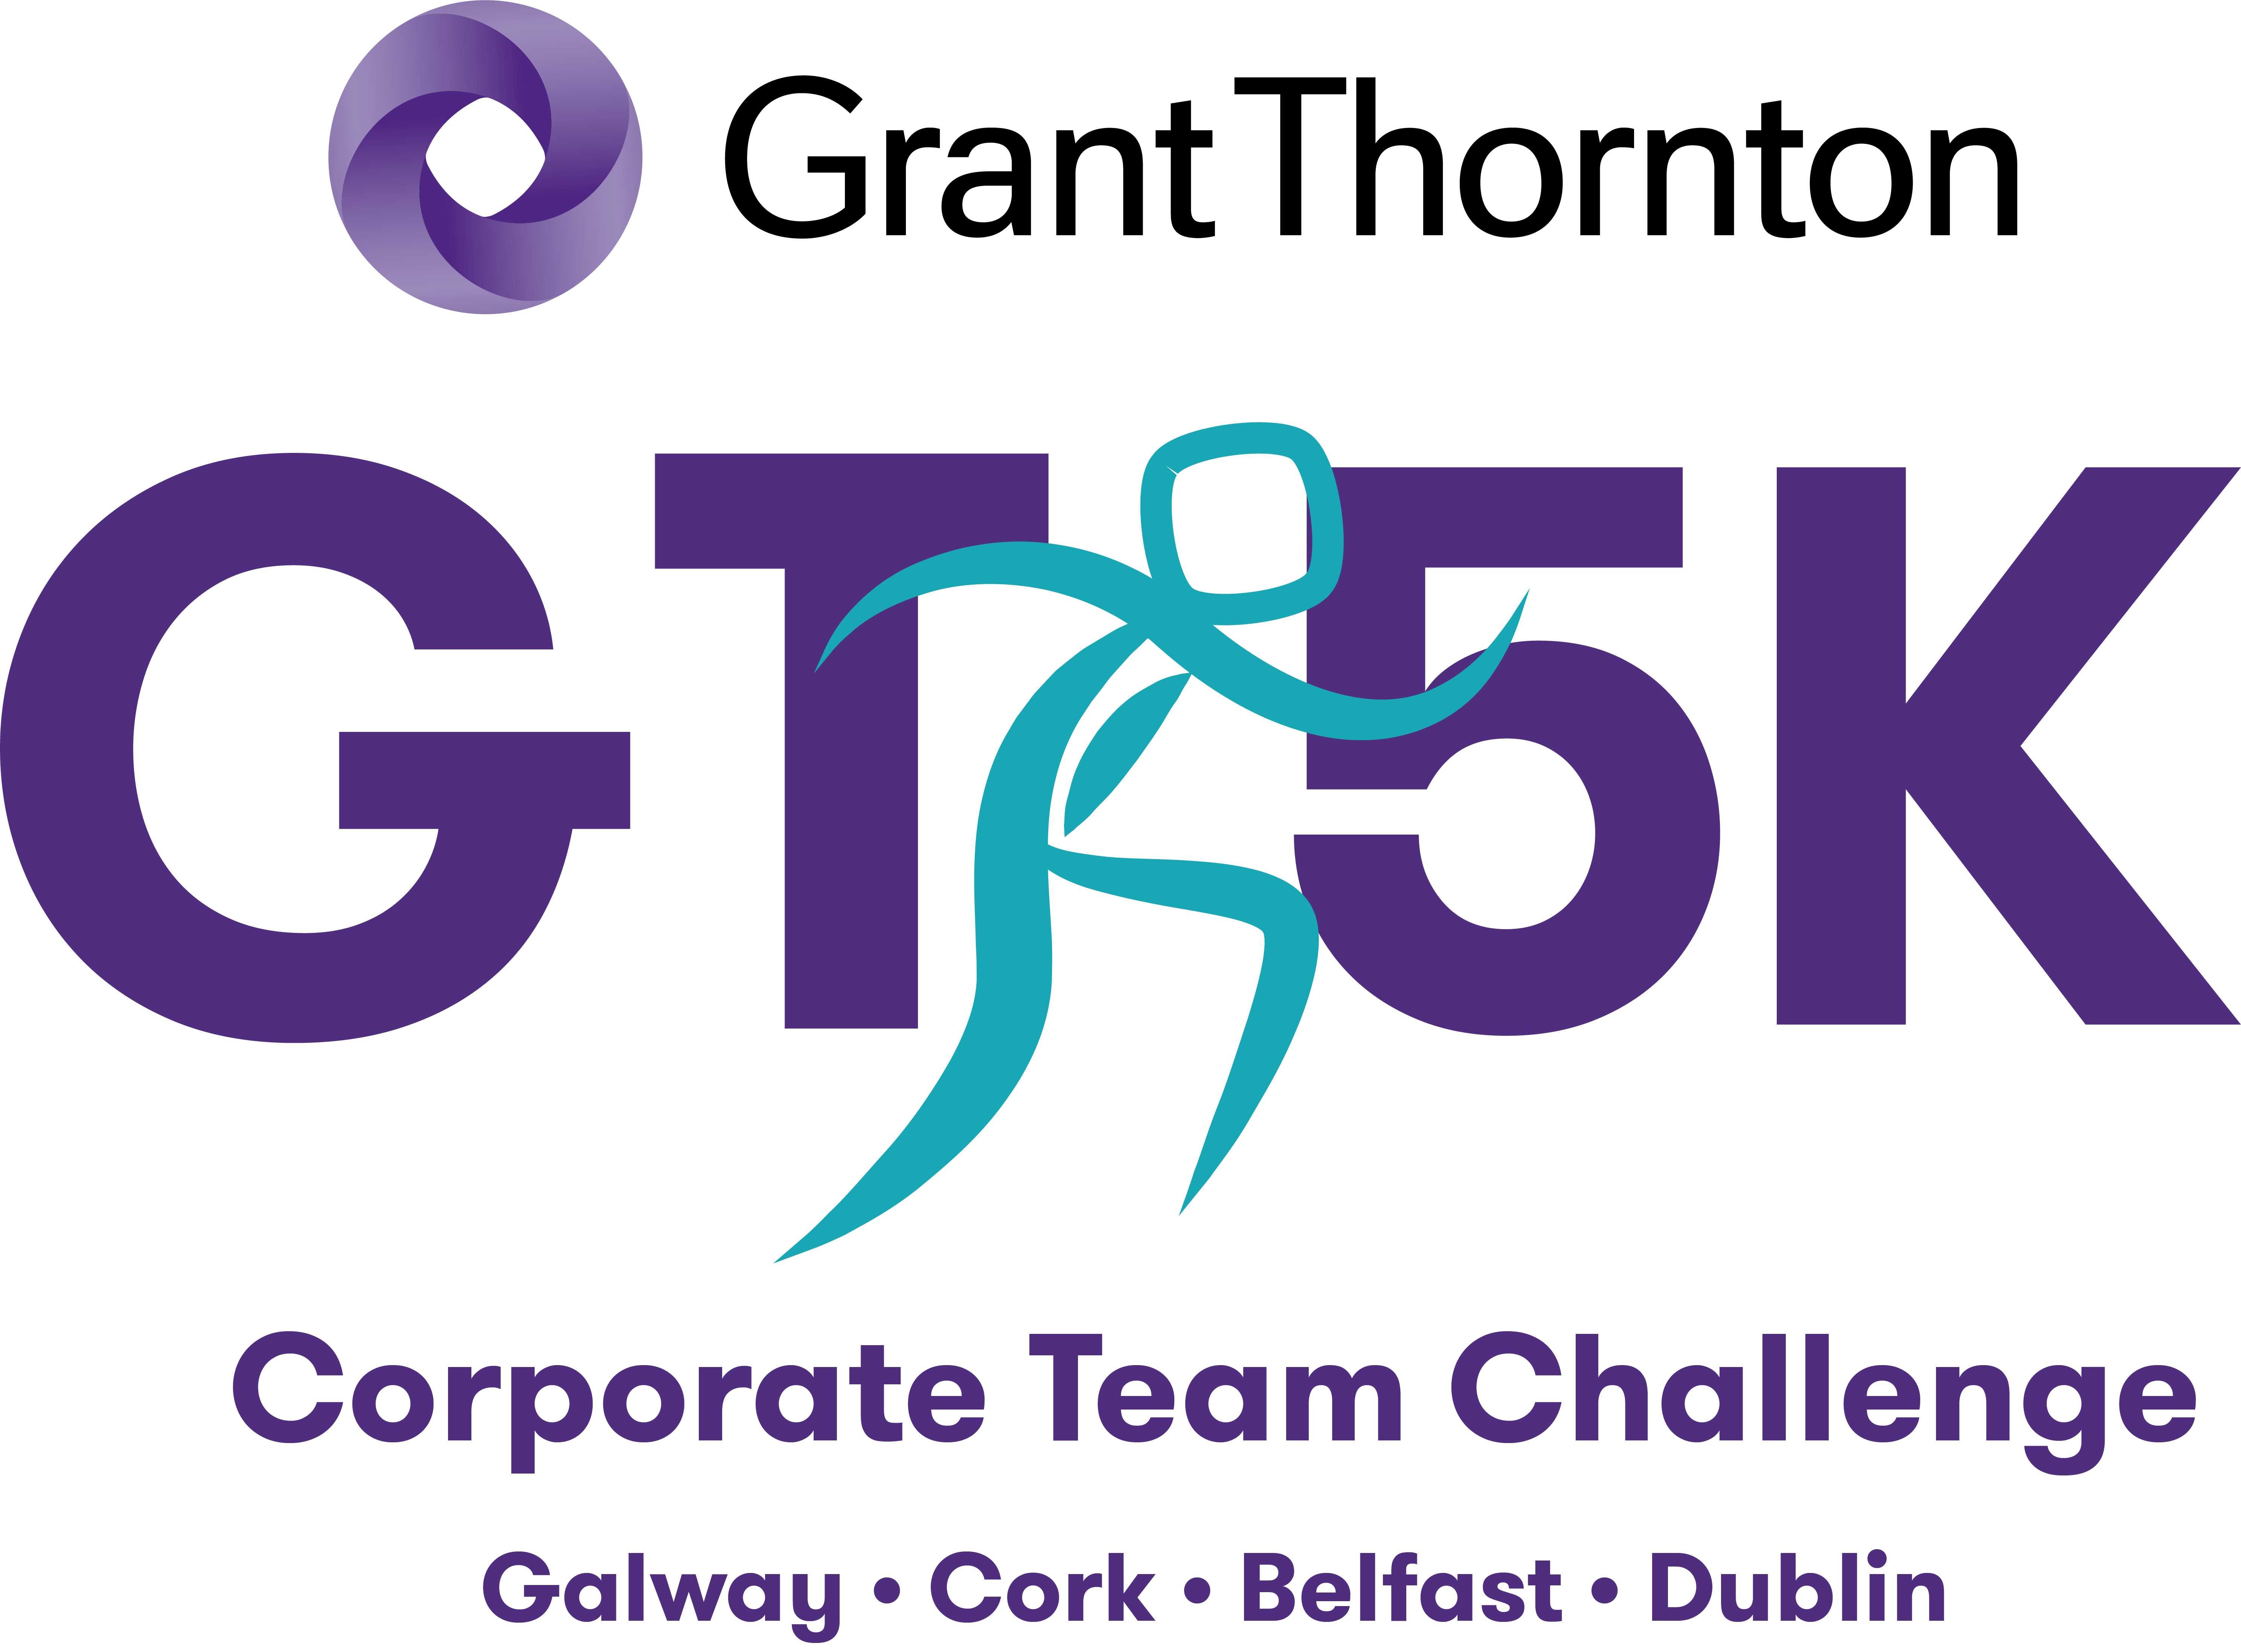 #GT5K Docklands 2018 - Be part of the series